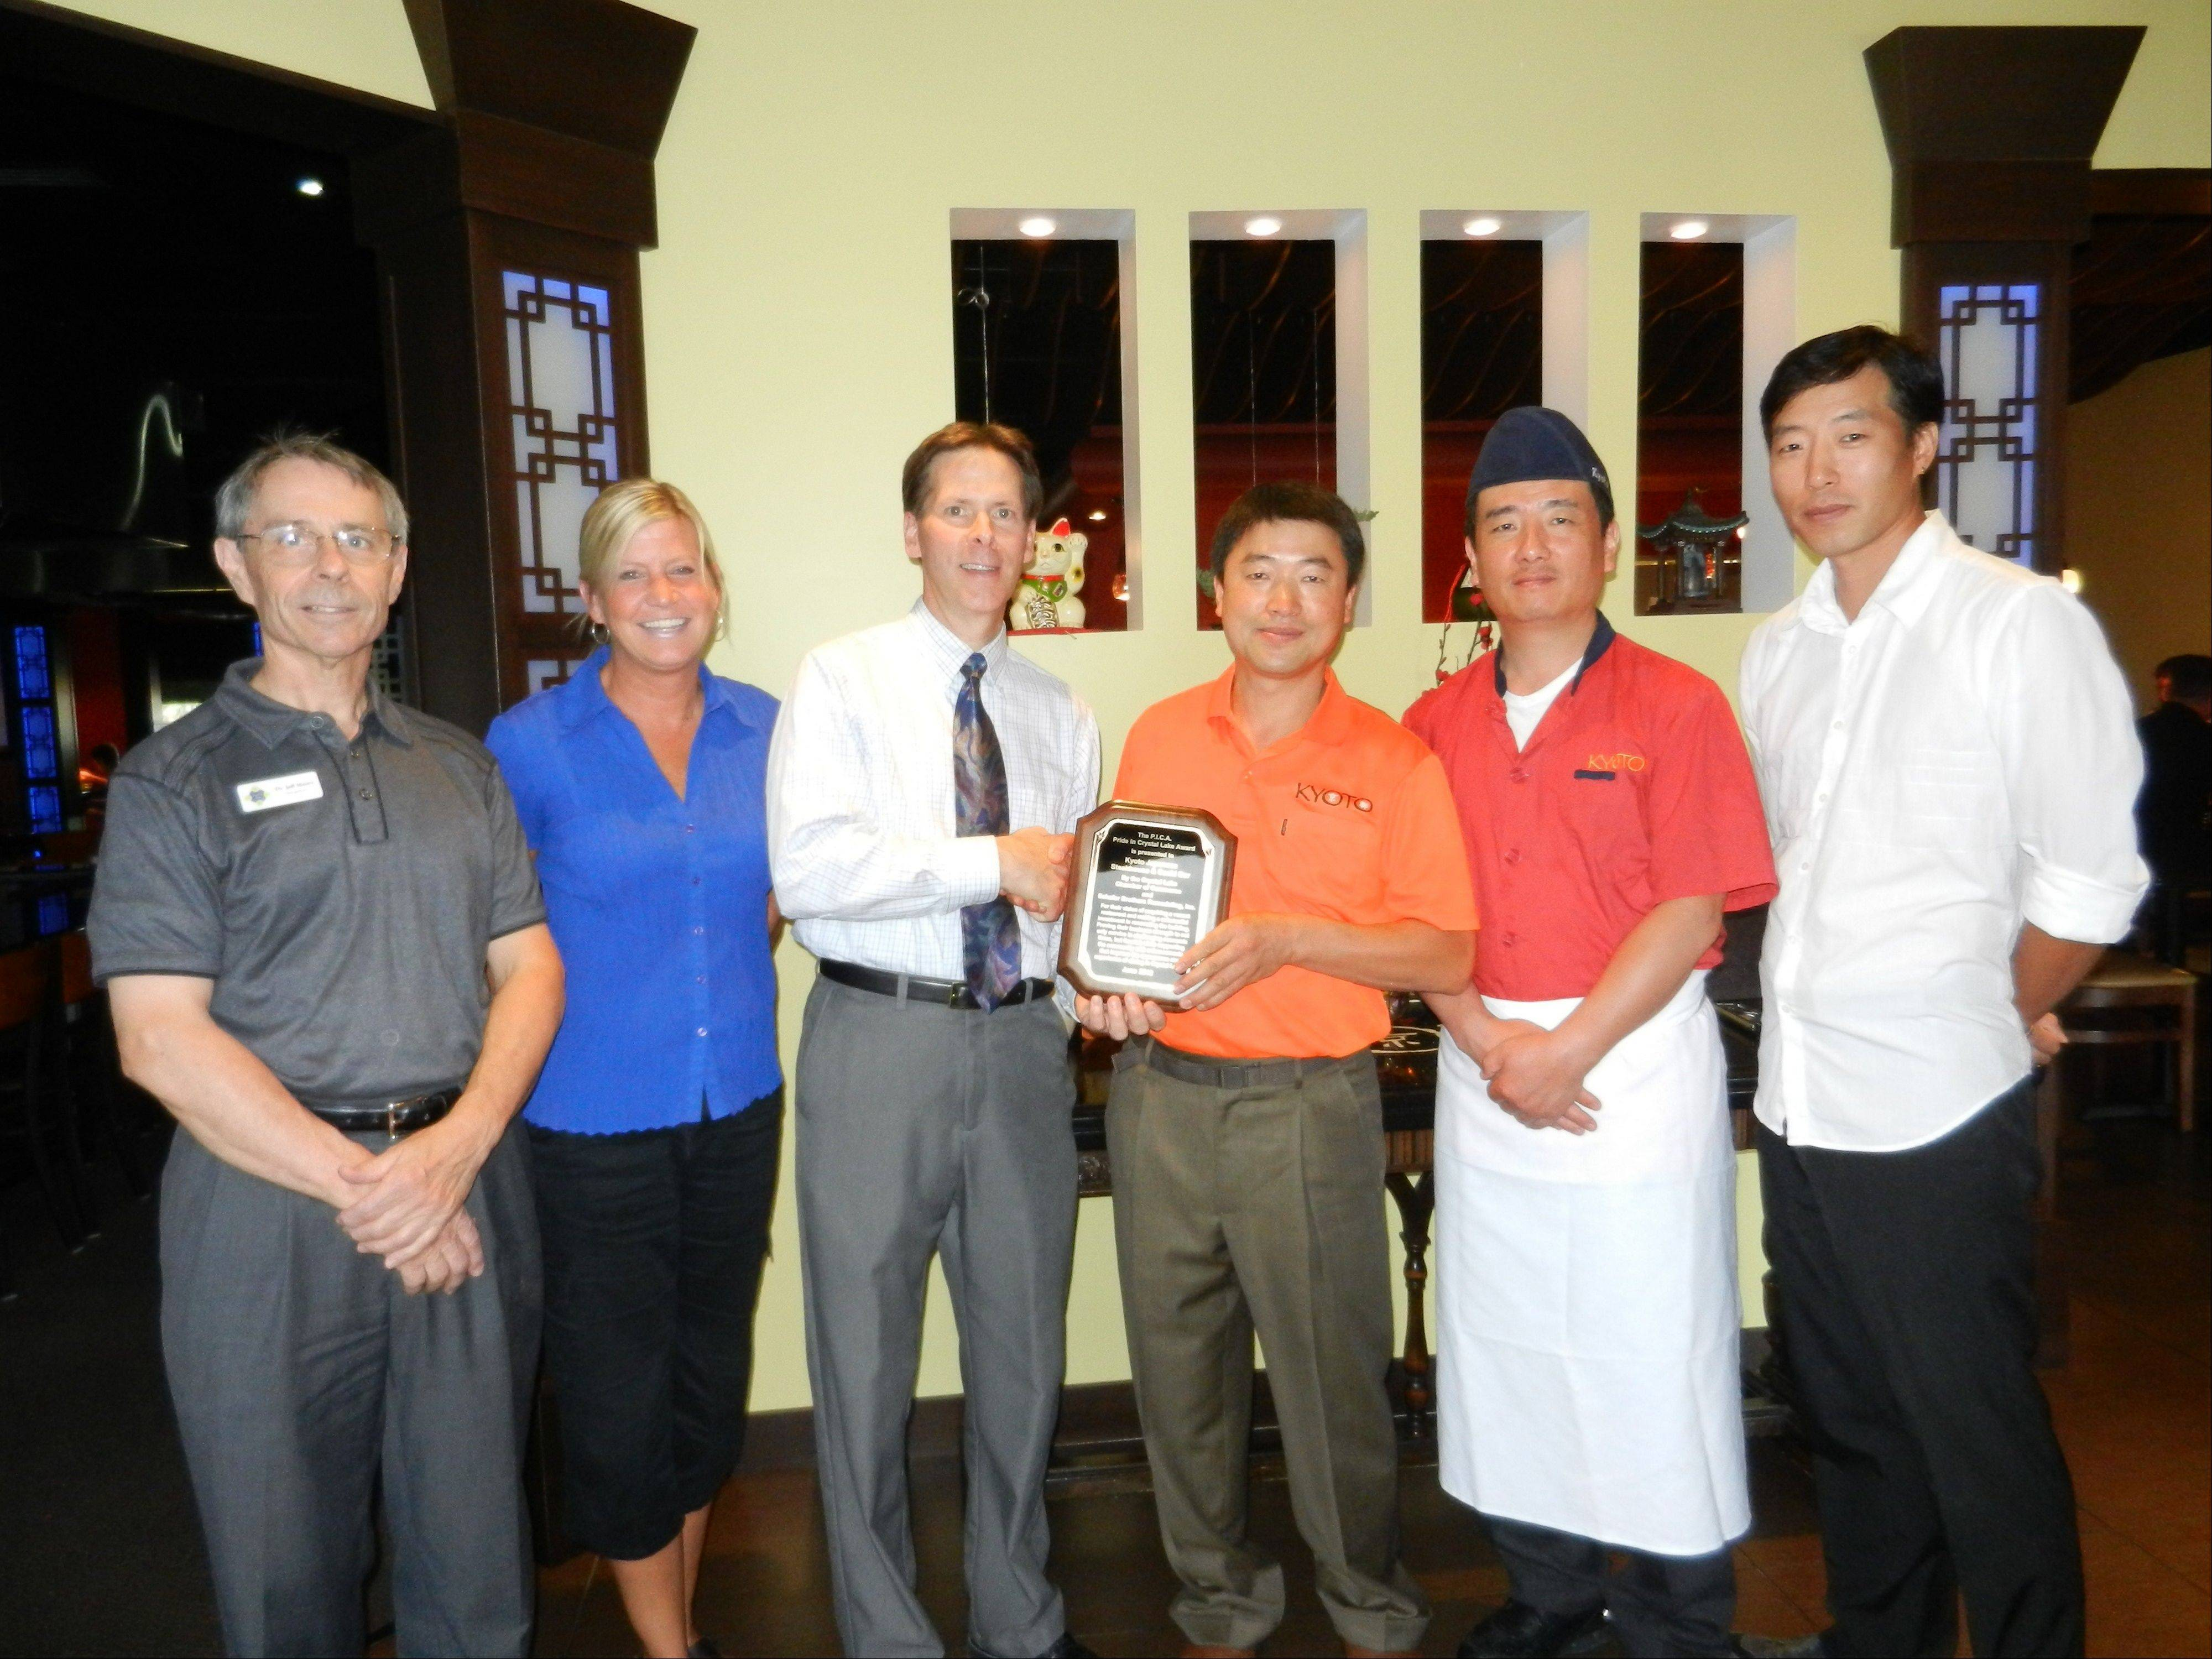 Kyoto Japanese Steakhouse and Sushi Bar received the Crystal Lake Chamber's Pride in Crystal Lake Award. Jeffrey Moore; (left) Sharon Repplinger; Gary Reece, Crystal Lake Chamber of Commerce President; Owner Shawn Lee; Head Chef Gilhoon Bang and General Manager James Shim.